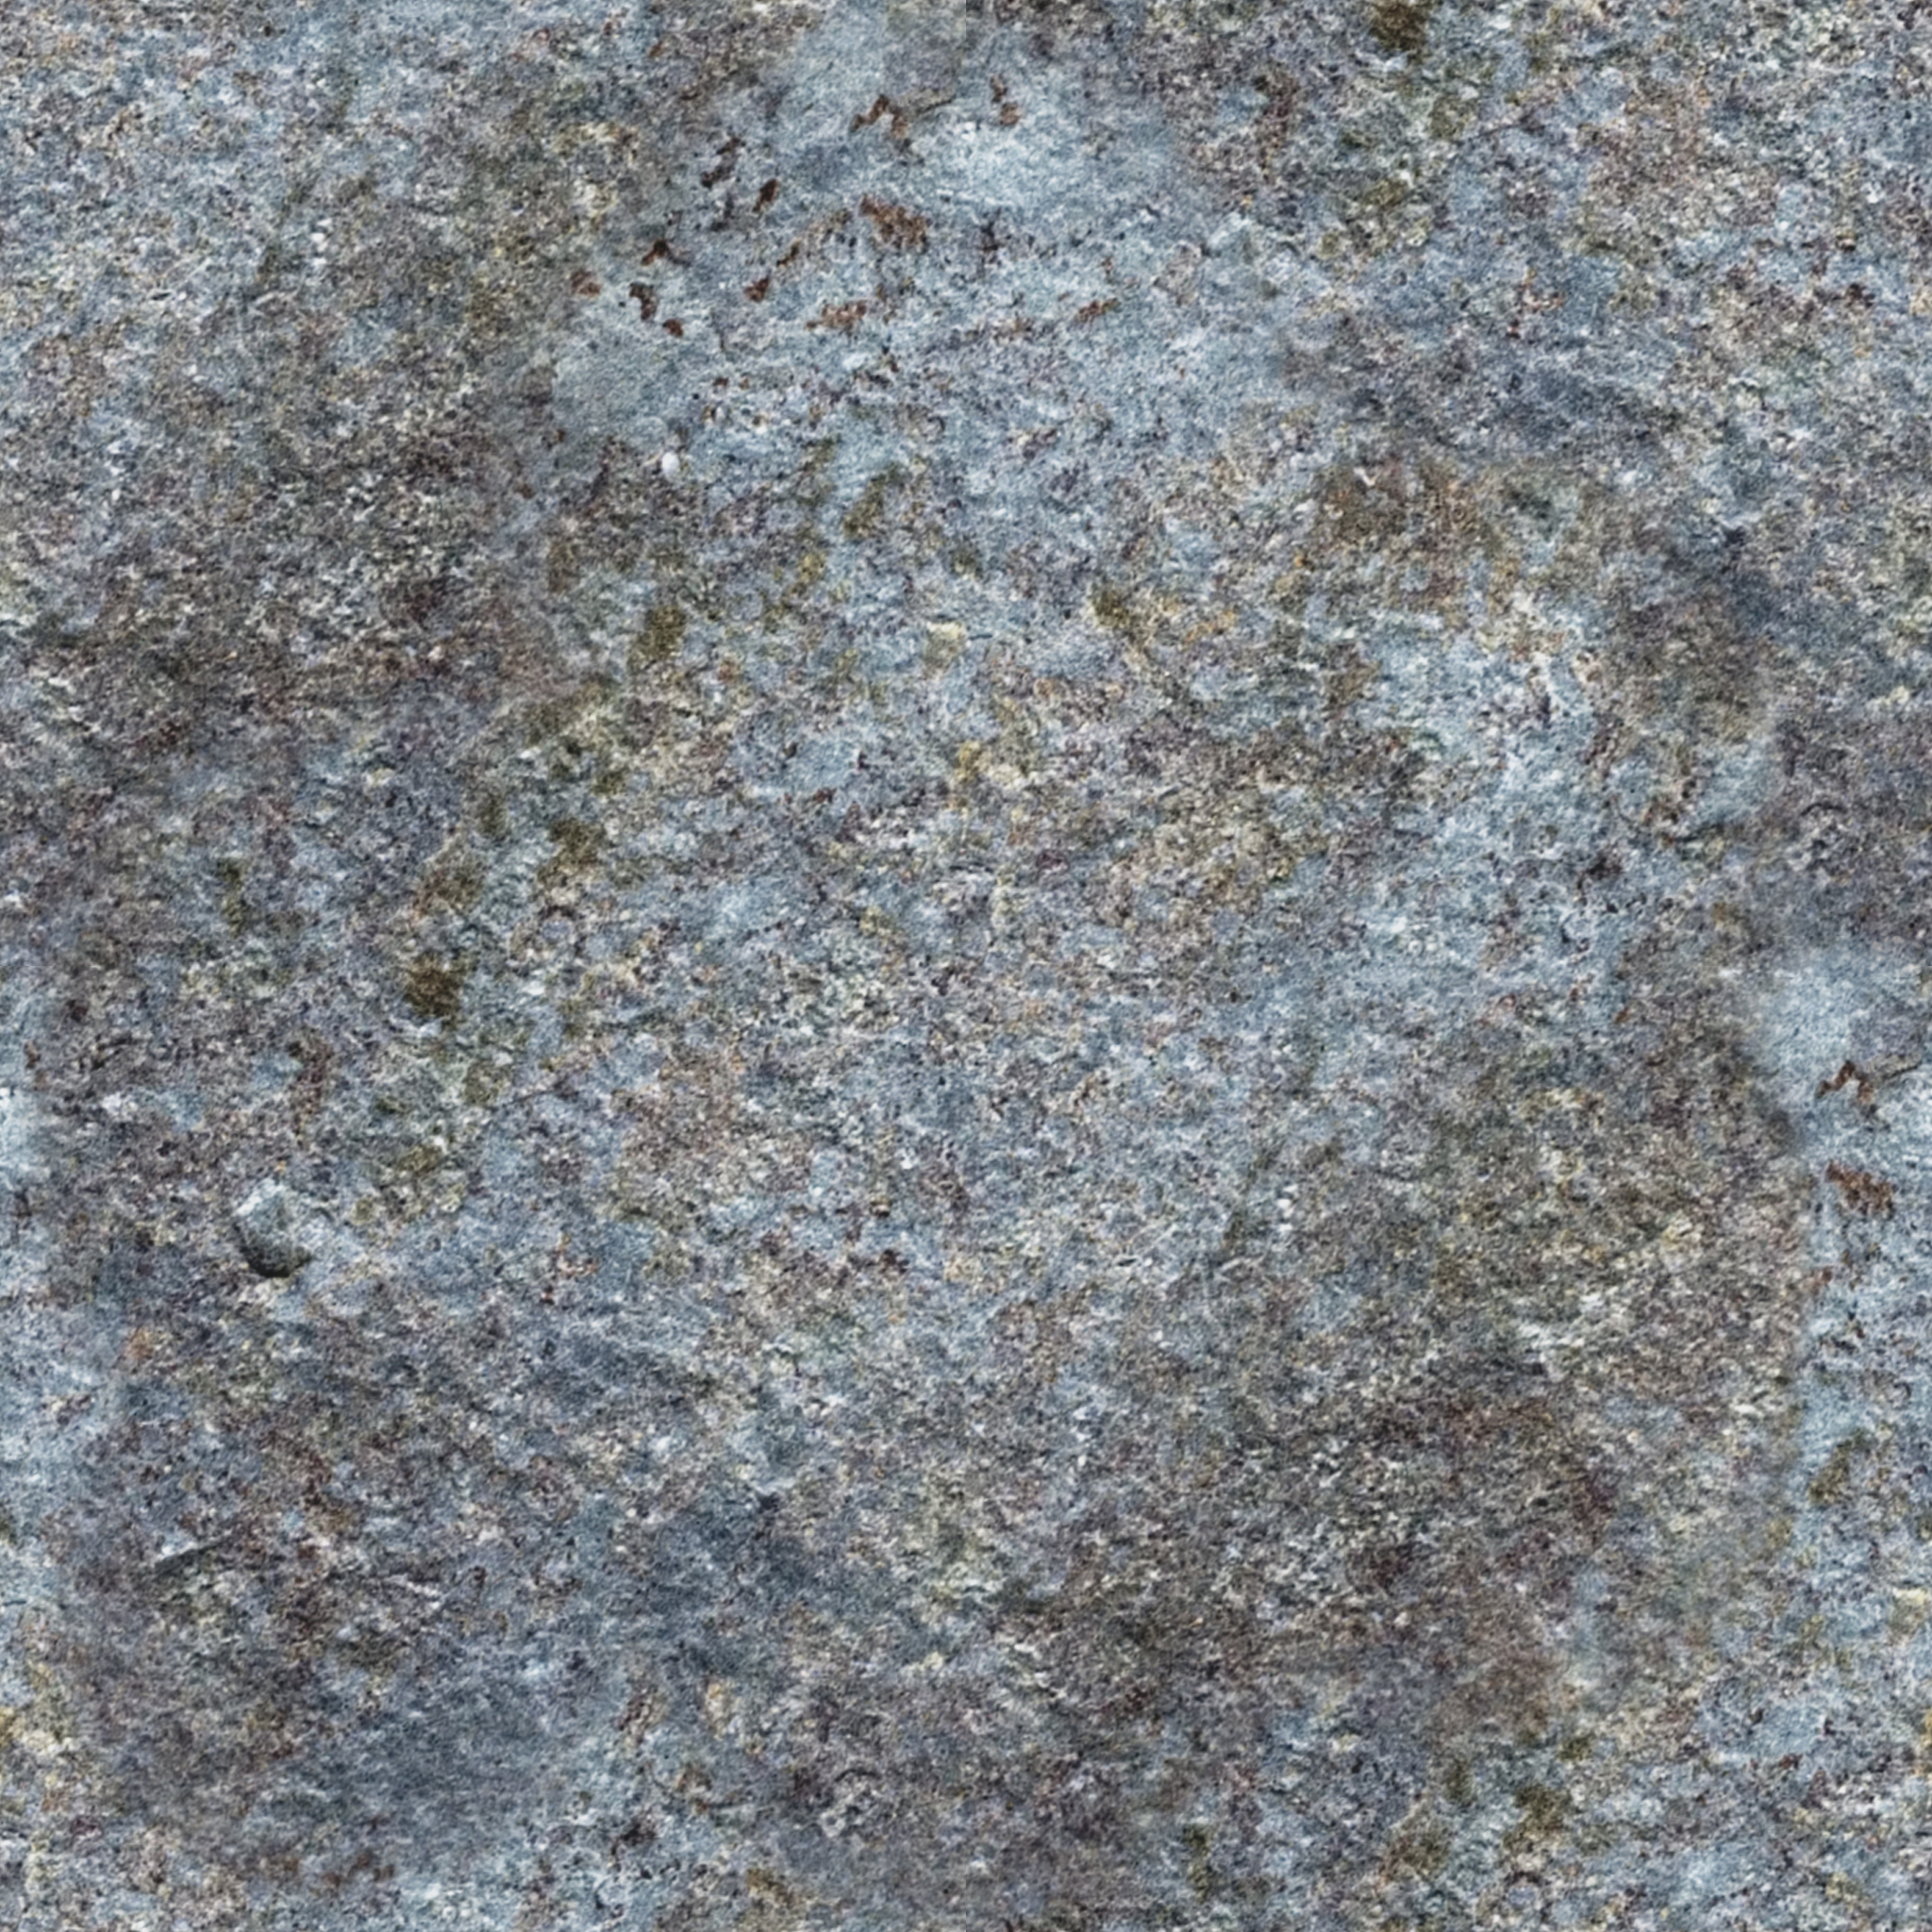 Blue Brown Rock.jpg